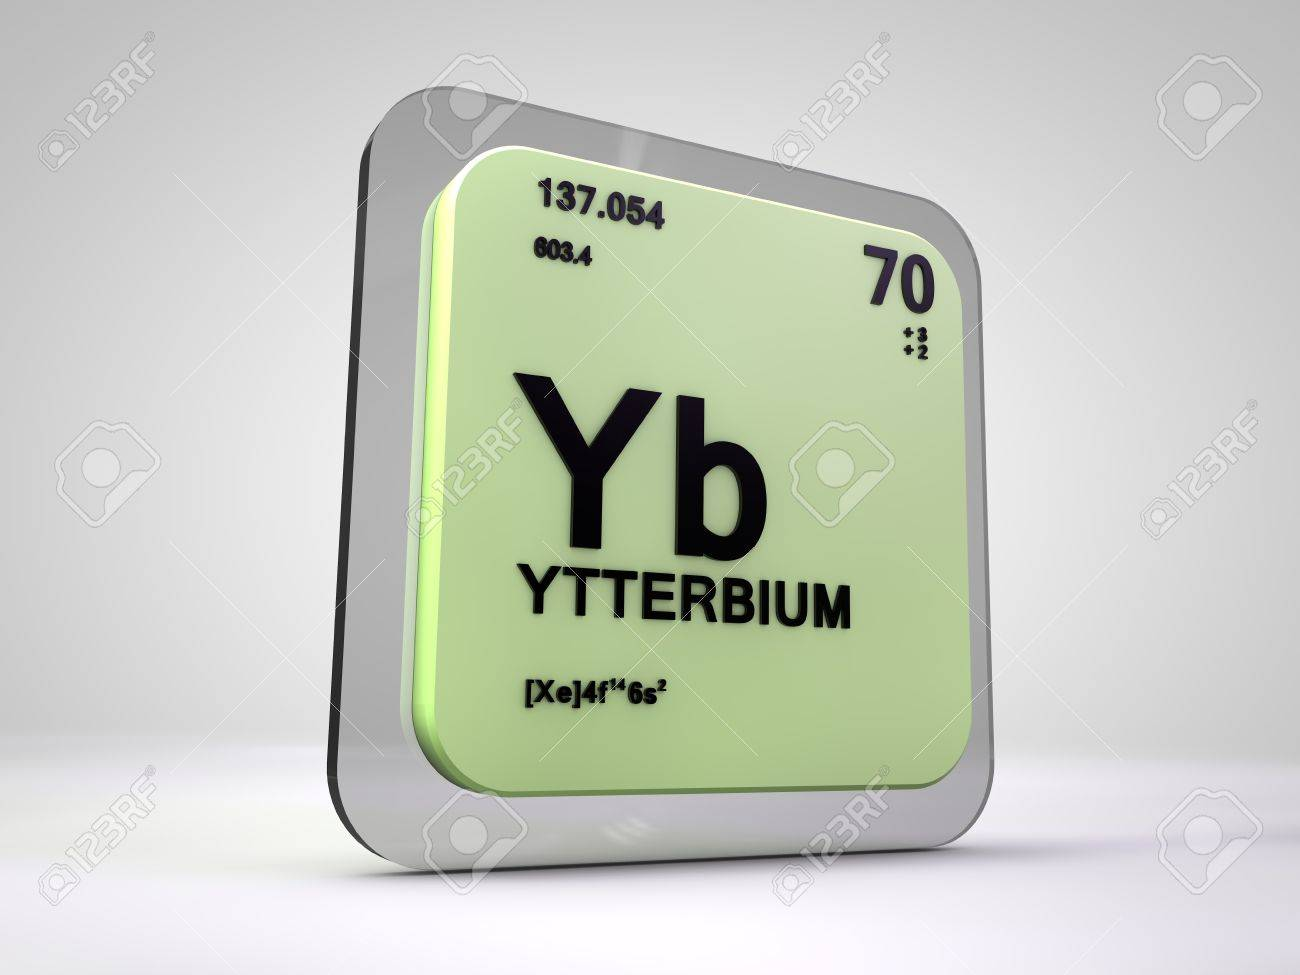 Ytterbium yb chemical element periodic table 3d render stock ytterbium yb chemical element periodic table 3d render stock photo 75444796 urtaz Images